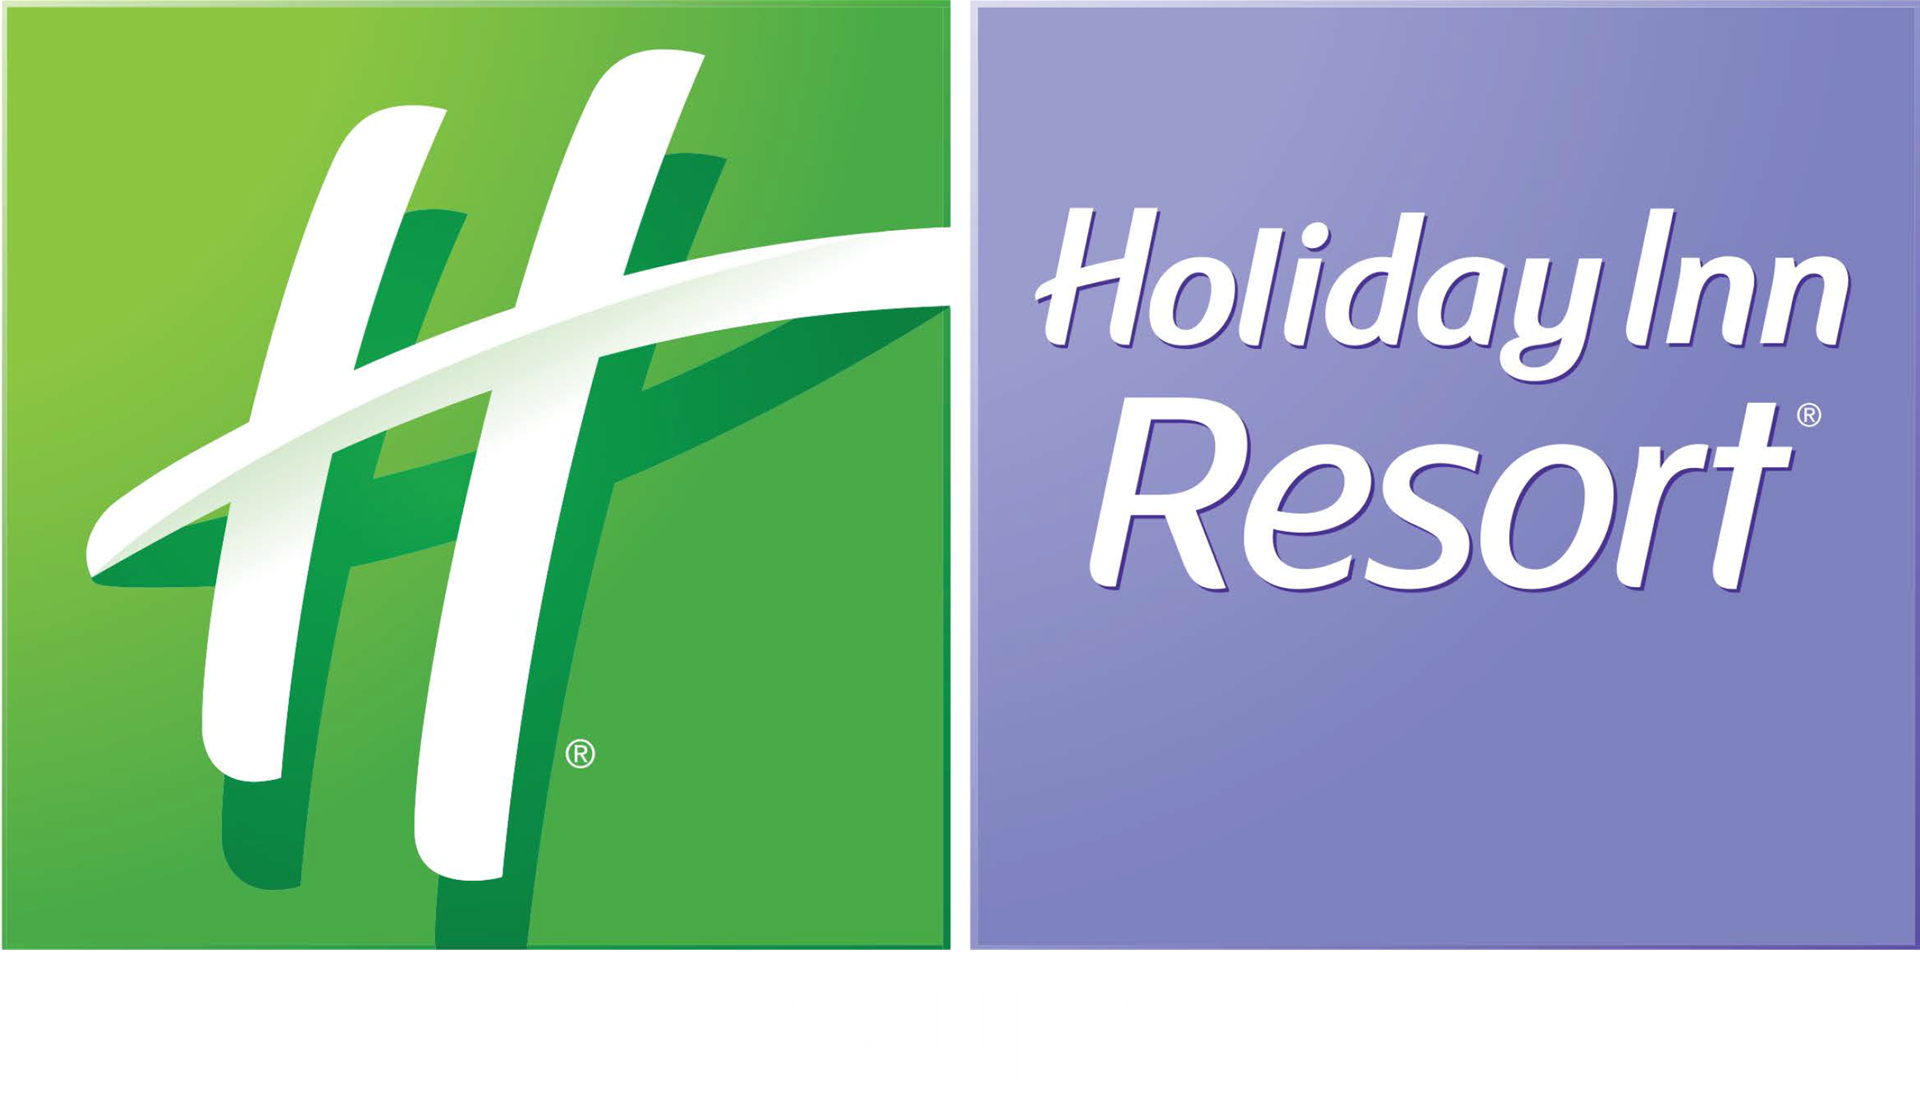 Holiday Inn Png Logo.